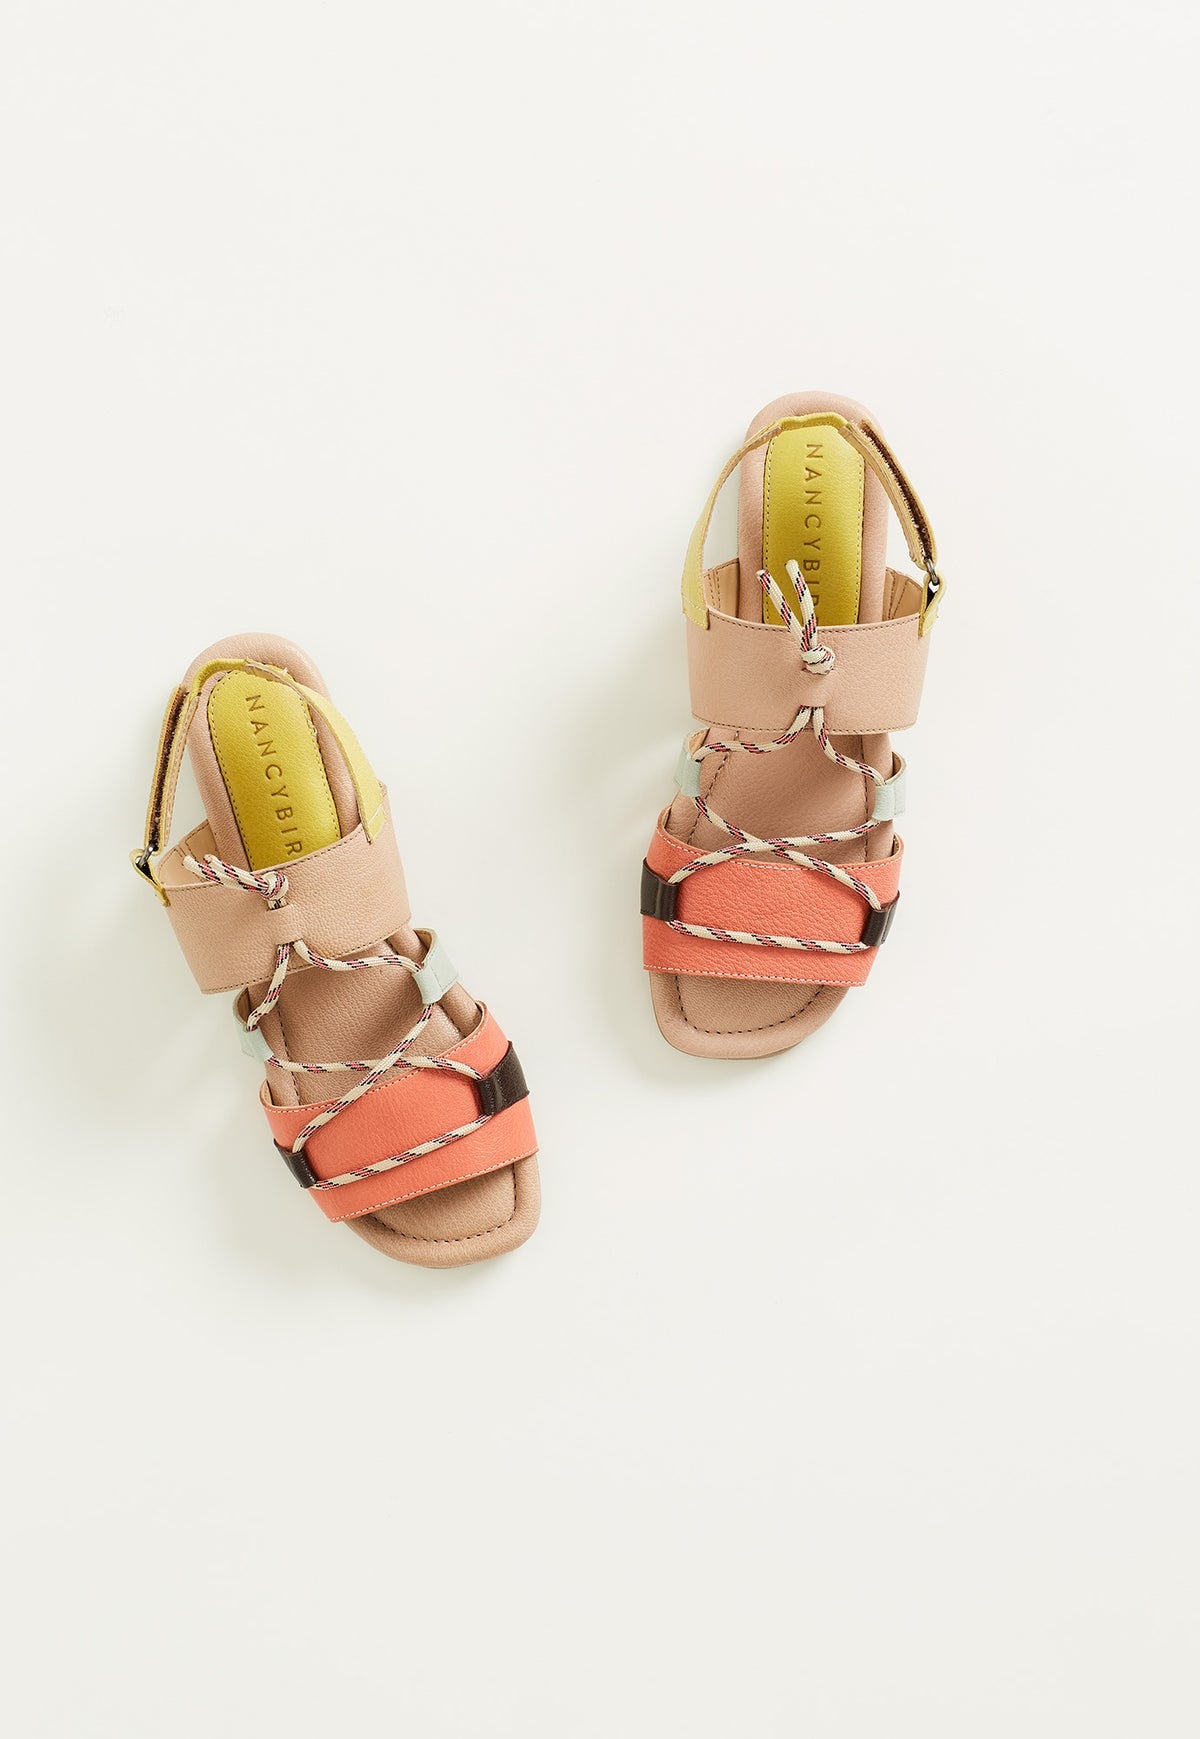 Knot Sandals - Multi